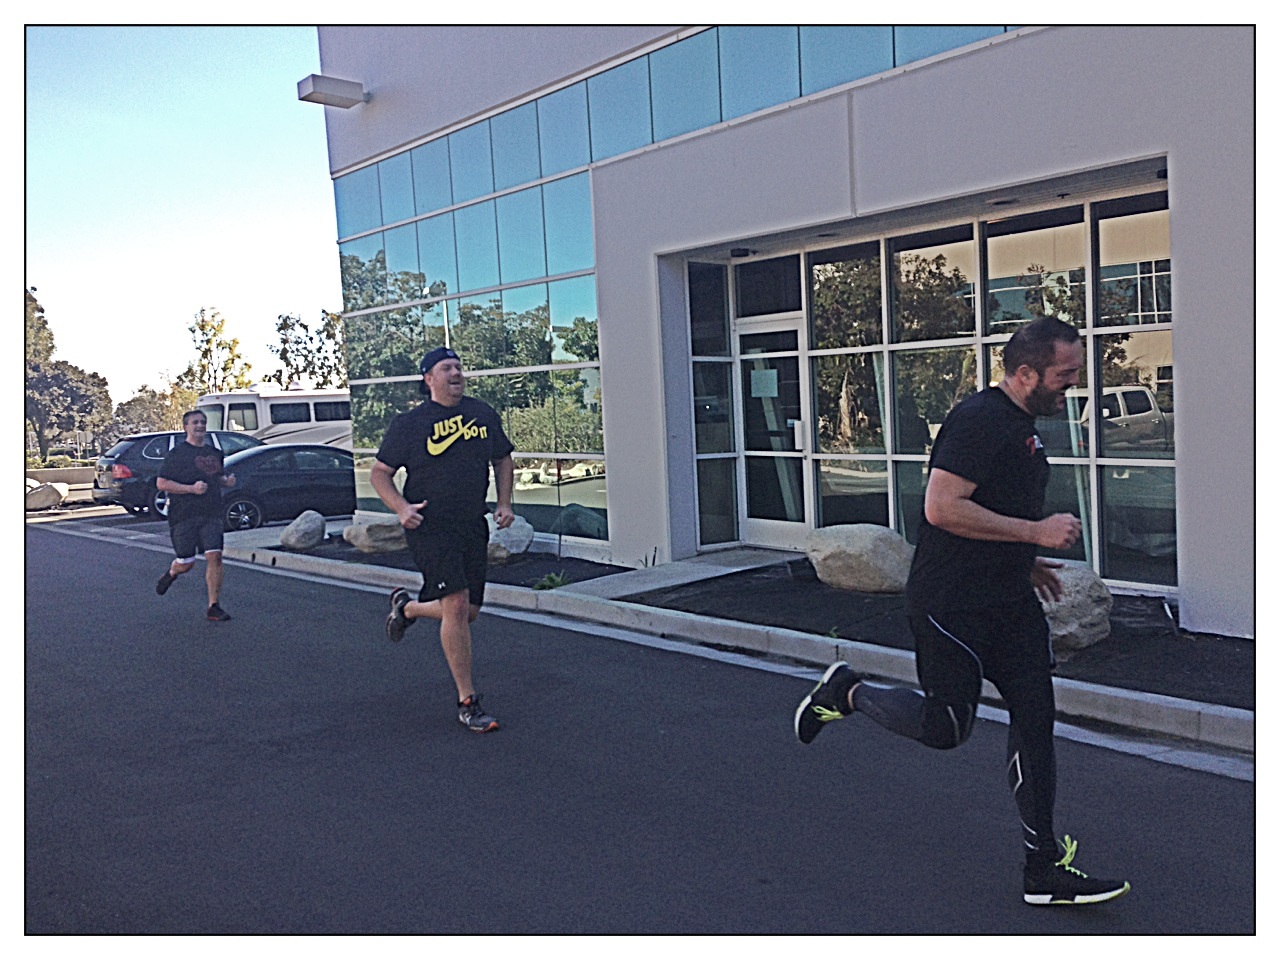 Mike, Chris and Duncan race to the finish on the last round of Mondays 200 meter repeats